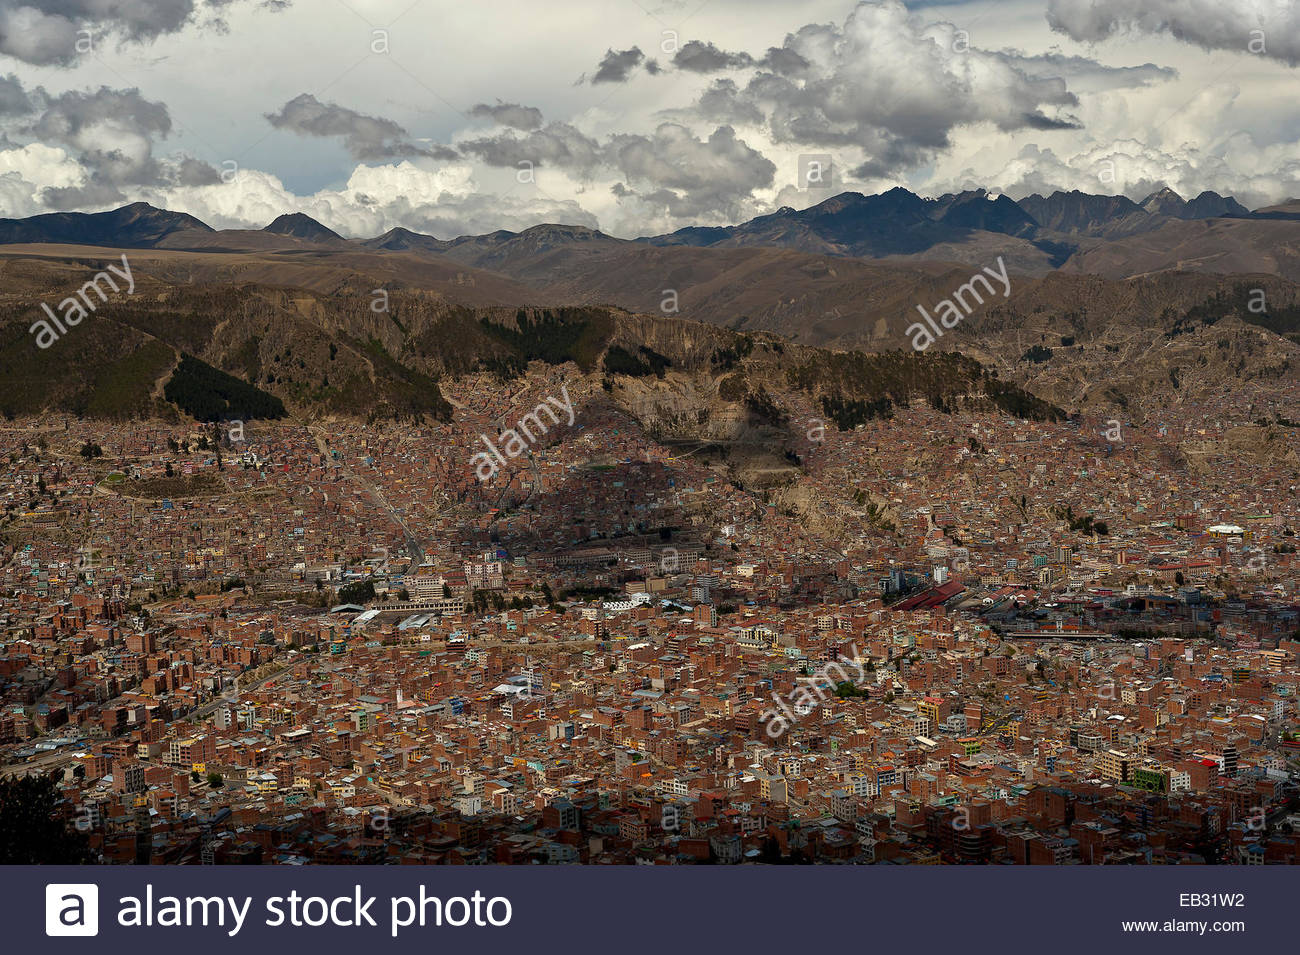 The city of La Paz, lies in a bowl between the Altiplano and the Cordillera Real, and is the highest capital in - Stock Image